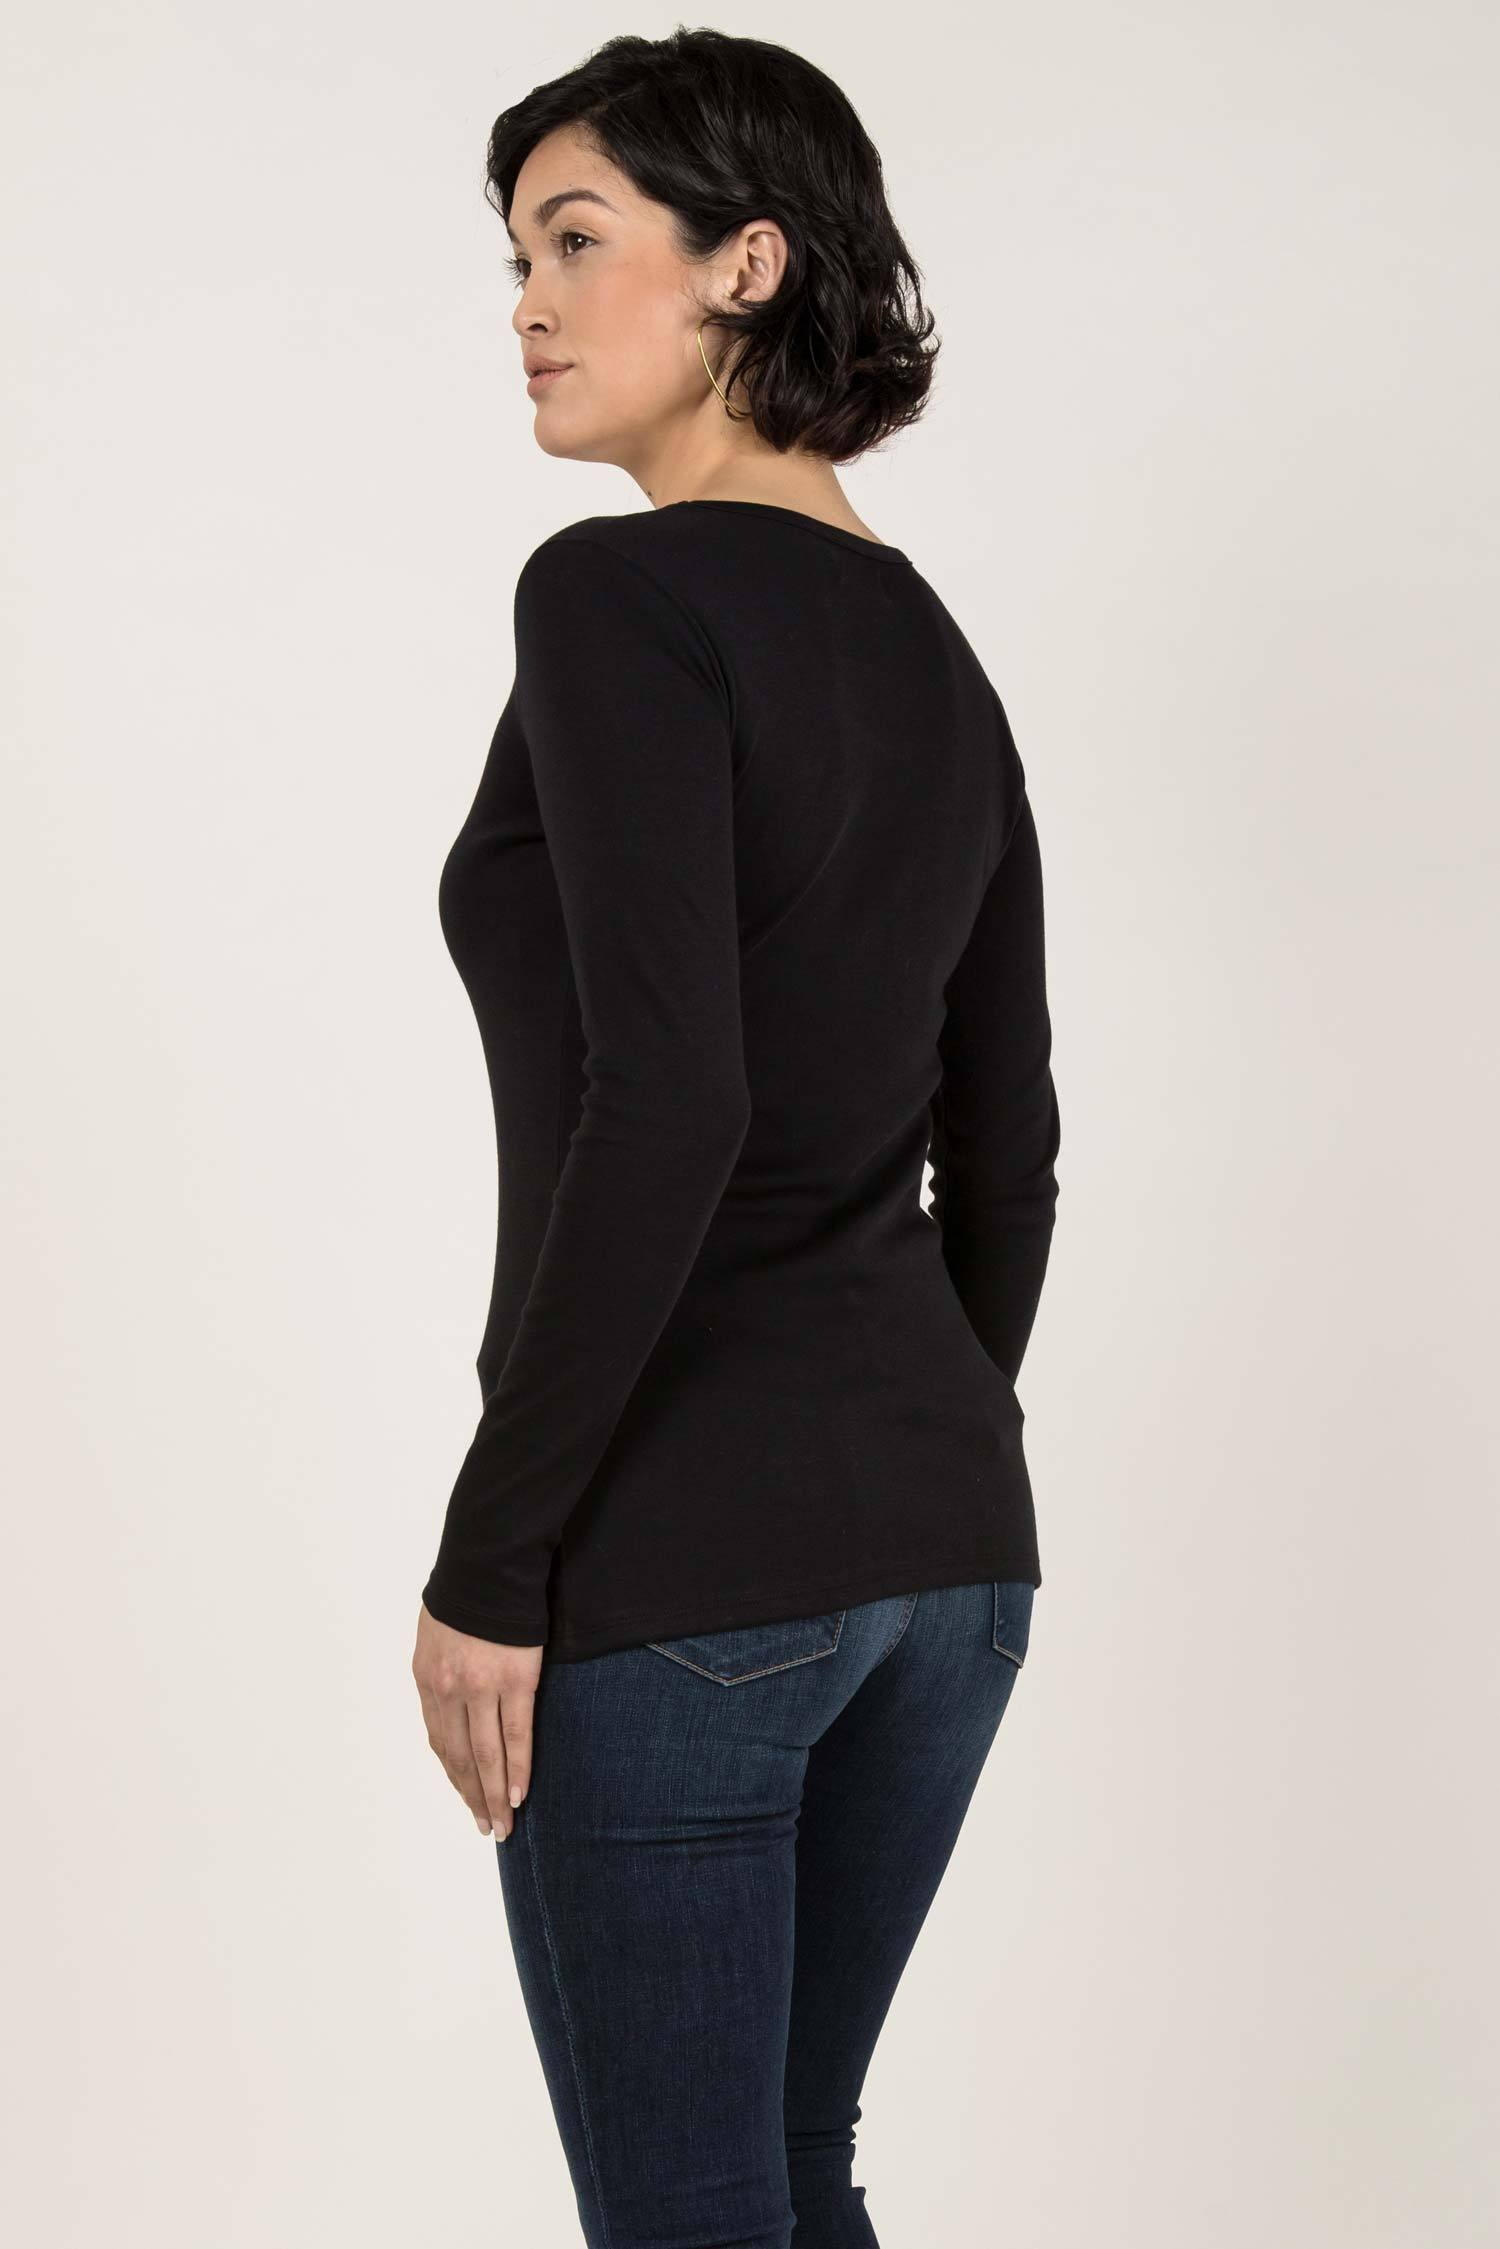 Womens Organic Cotton Top | Essential Long Sleeve Scoop Tee | Black